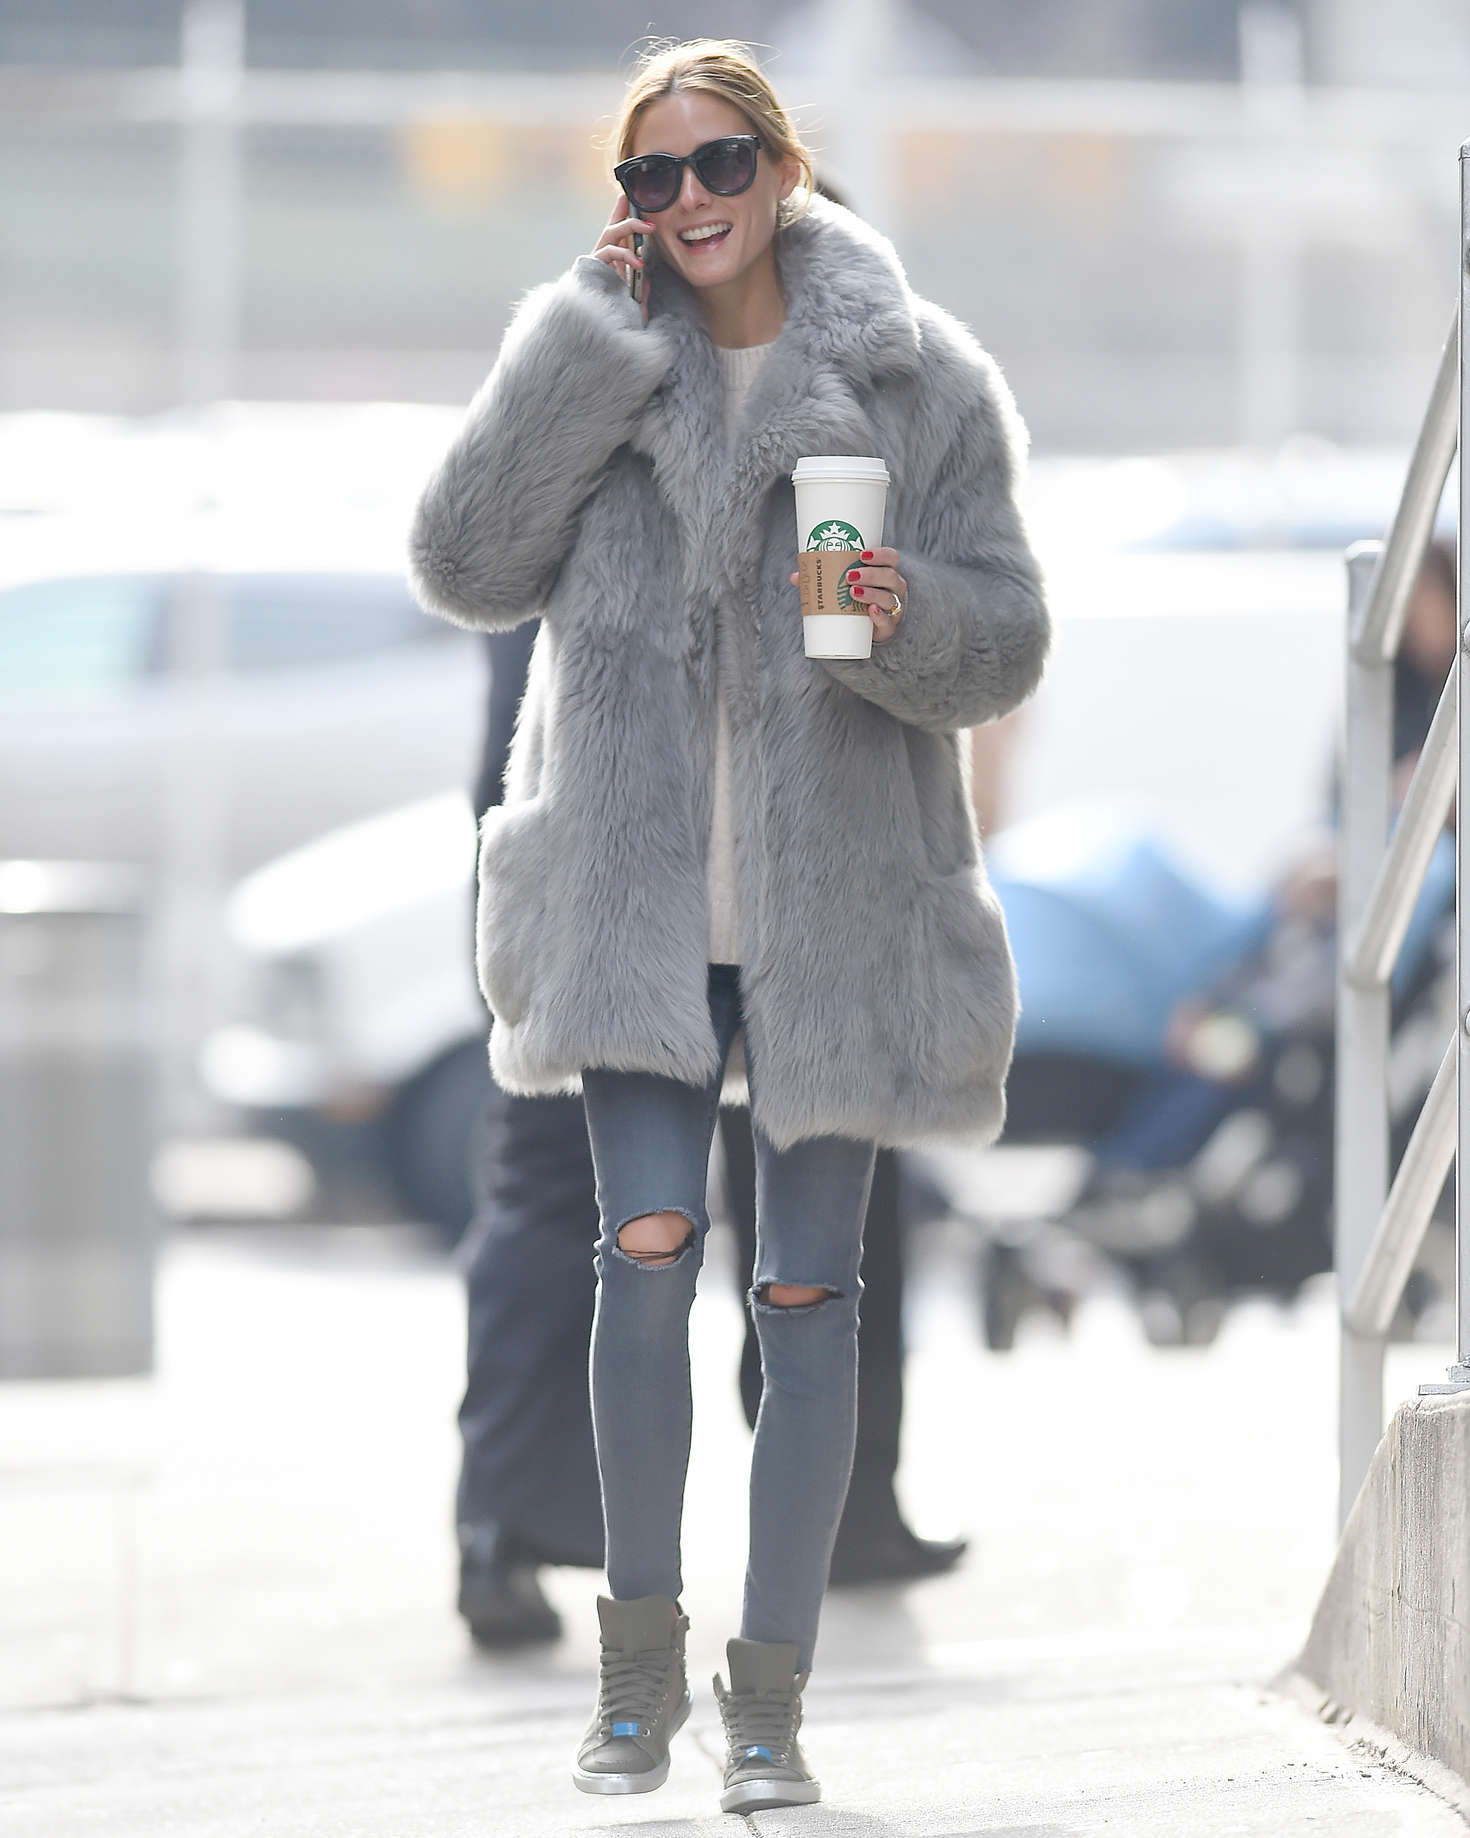 Olivia Palermo Wearing a grey fur coat -15 - GotCeleb